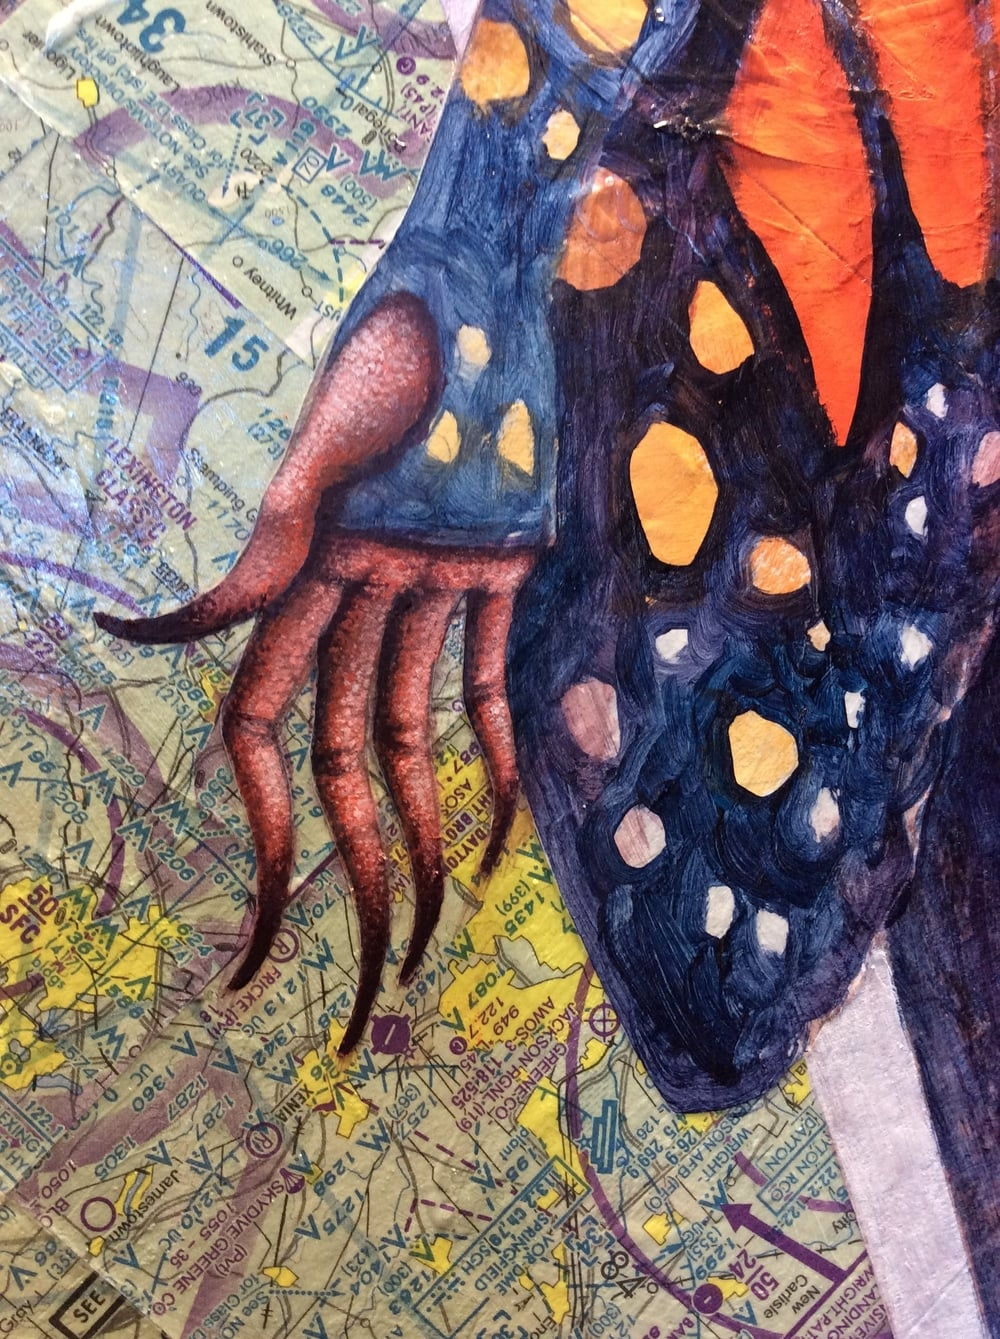 A detail of the hands in progress and the maps.